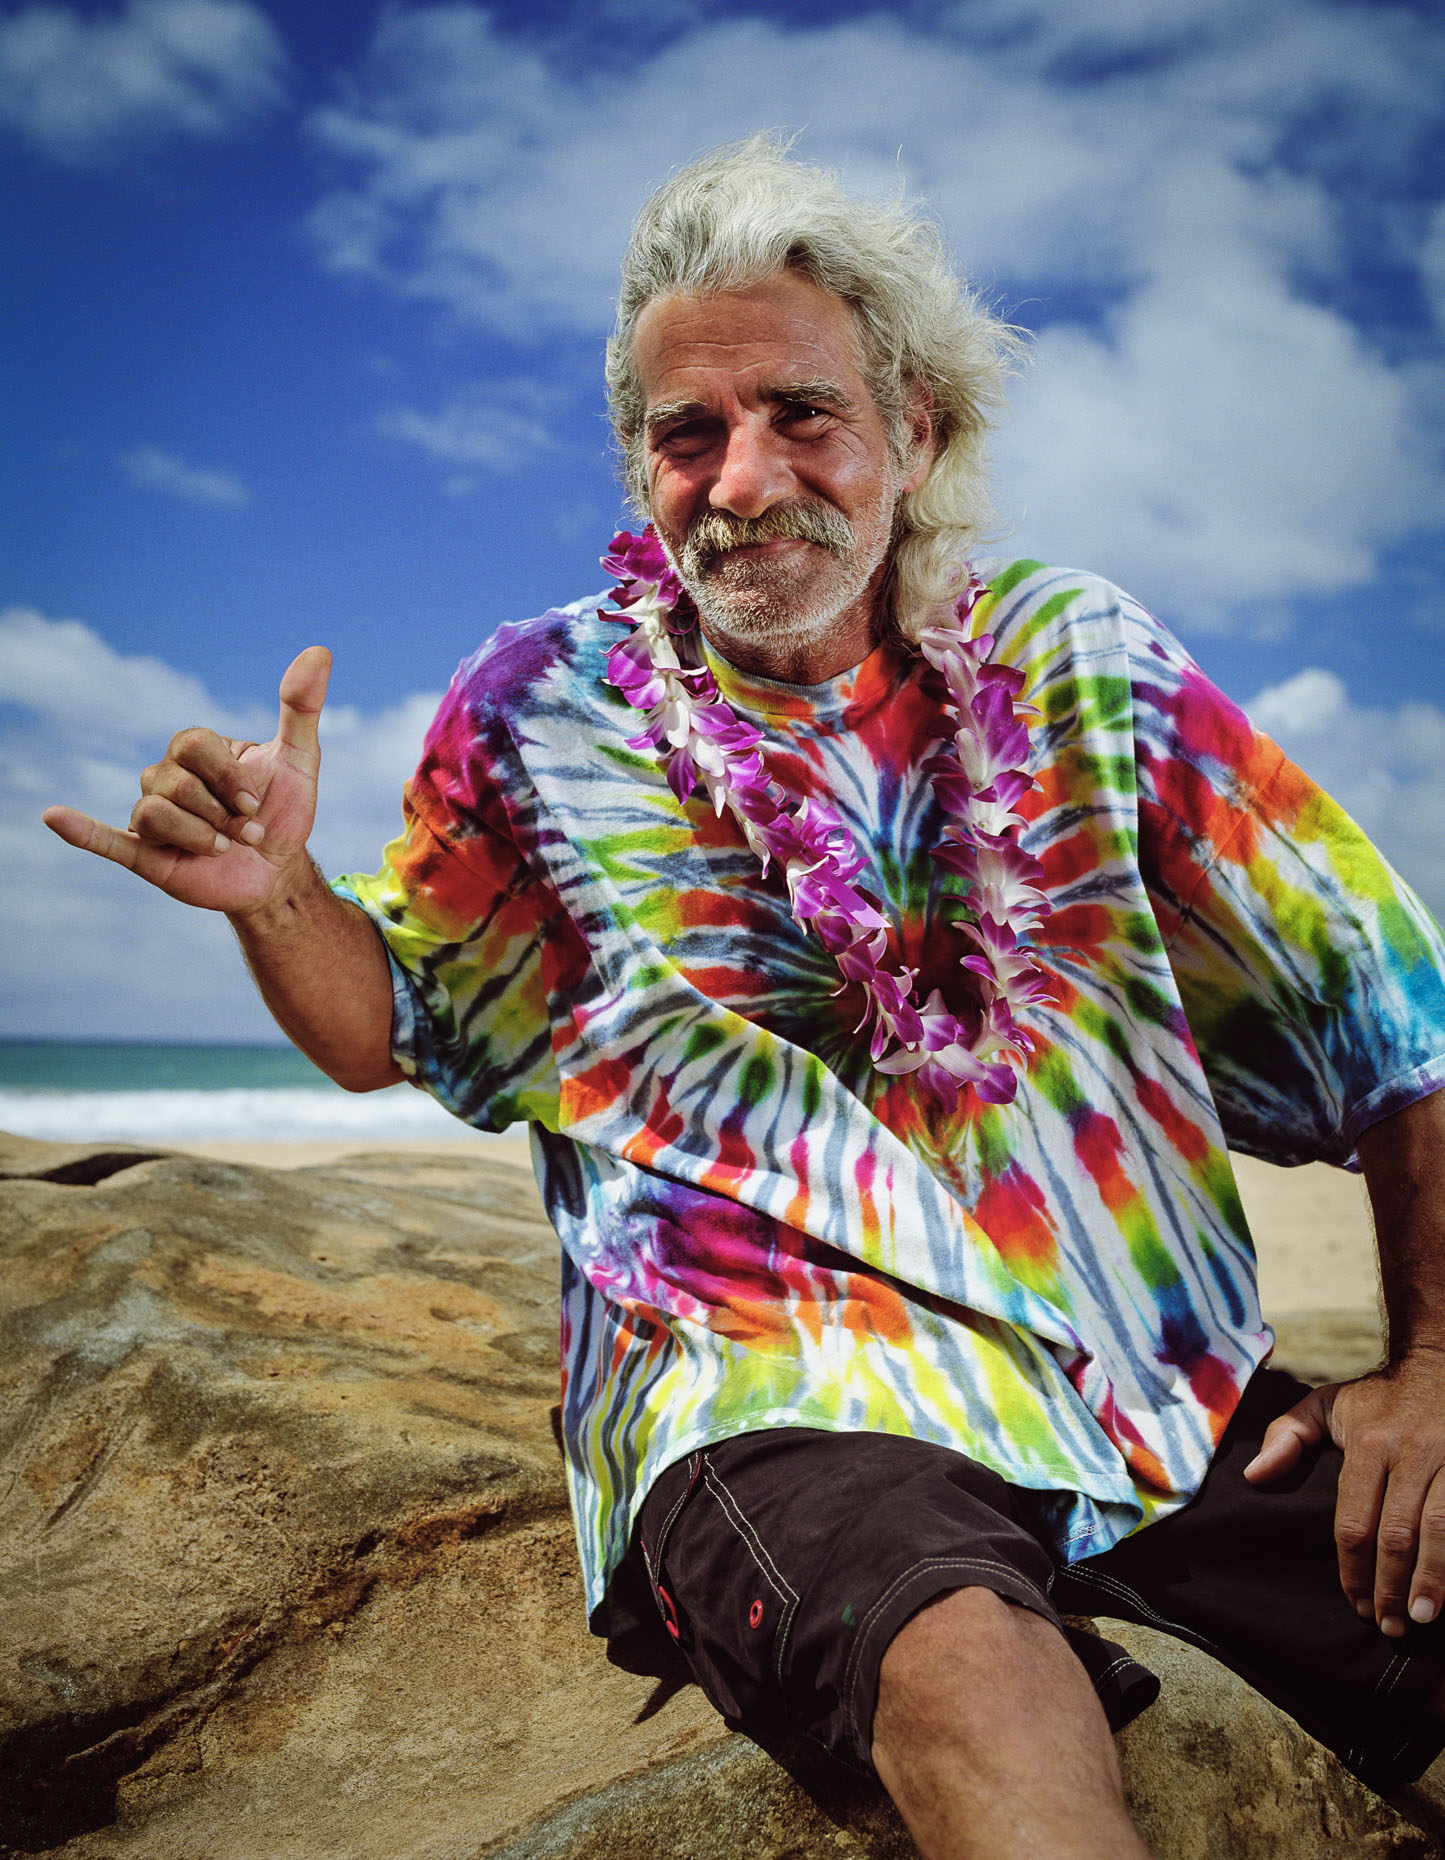 Man in Tie-Dye shirt and lei, gives shaka sign while at the beach near Kapaa Kauai, HI.